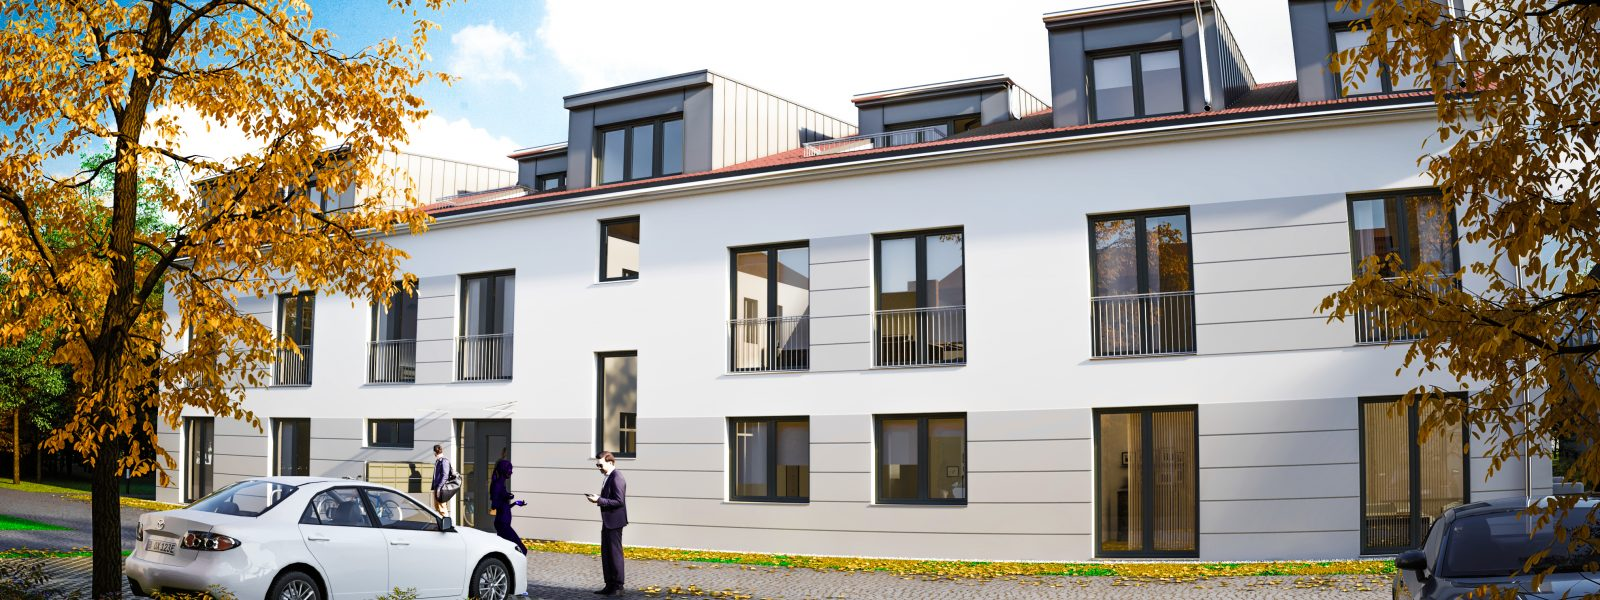 New development project with 10 apartments with parking spaces in Teltow